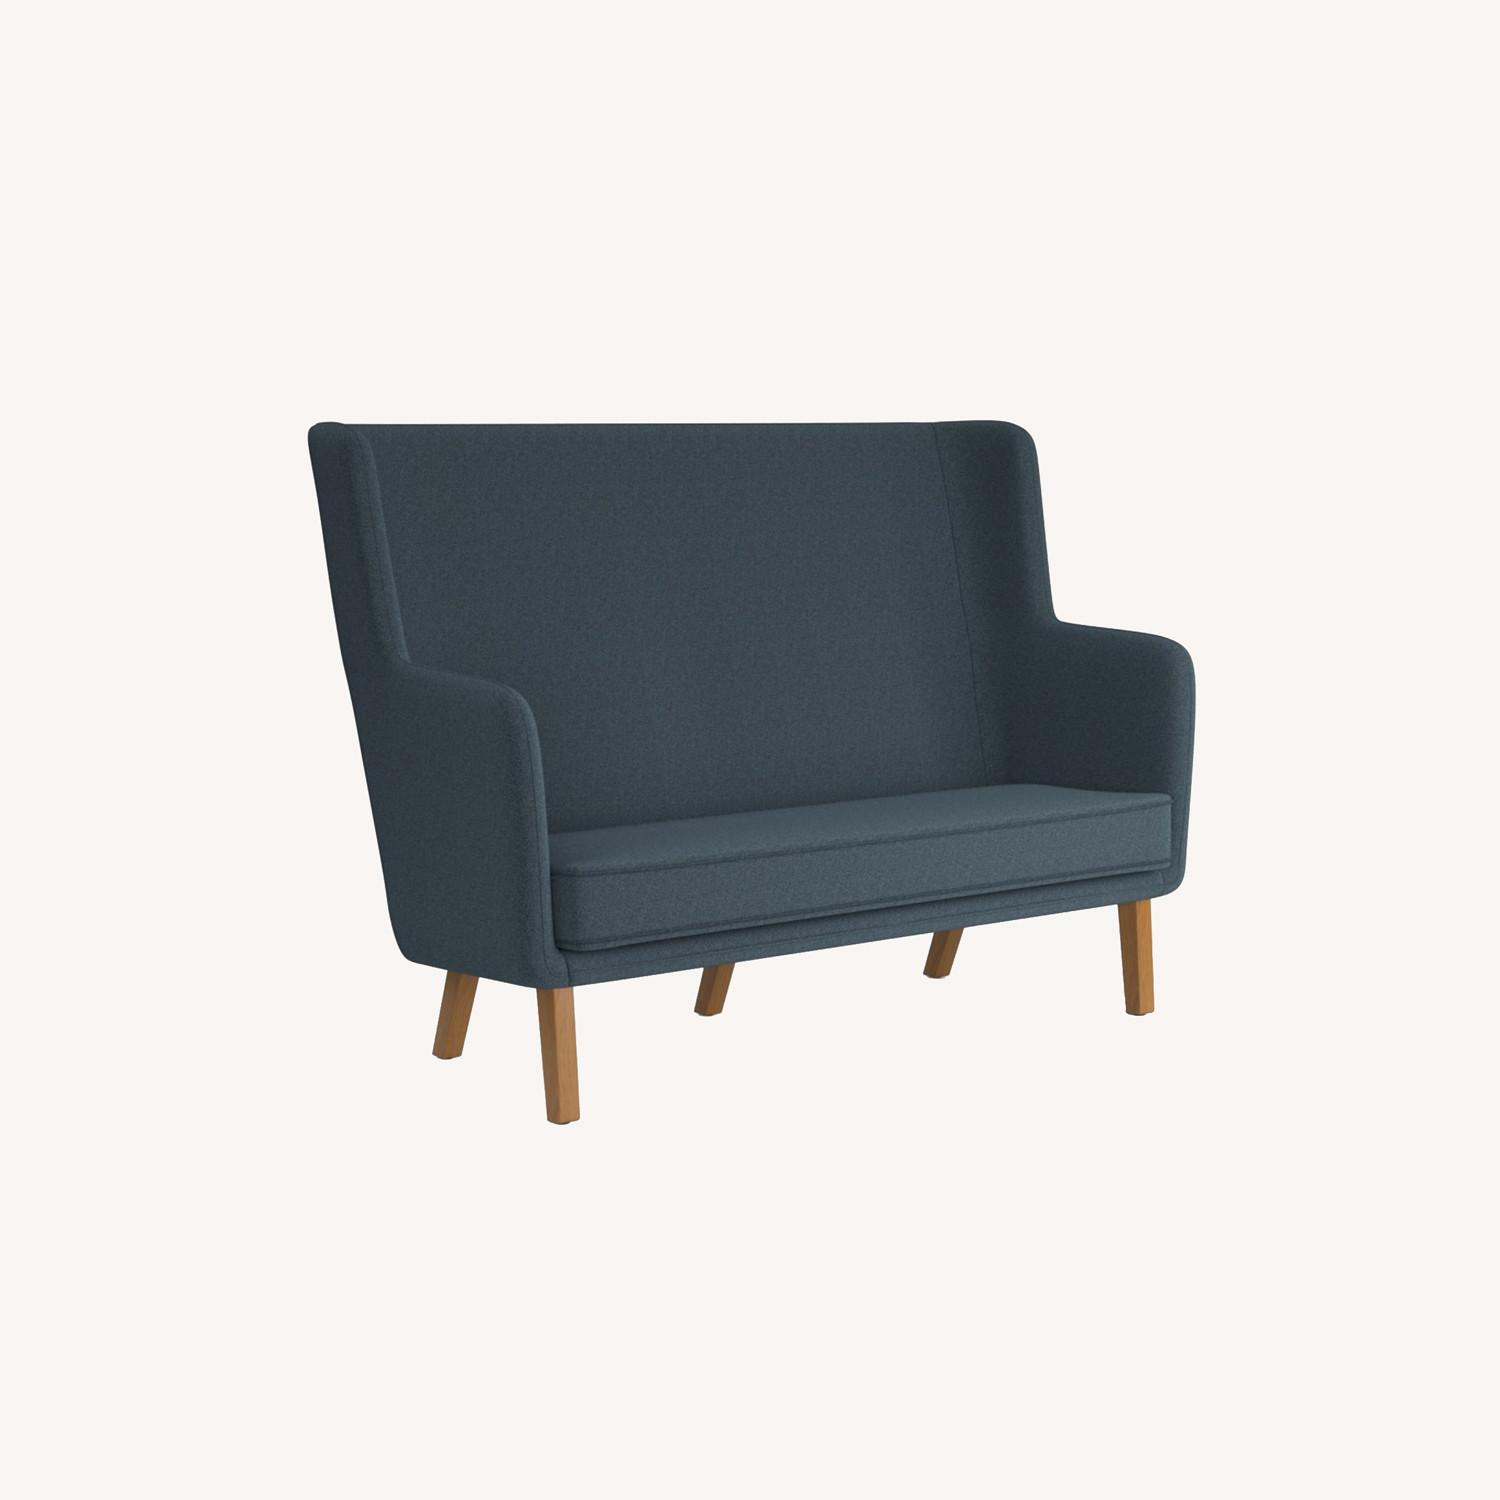 Knoll Rockwell Unscripted High Back Settee - image-0